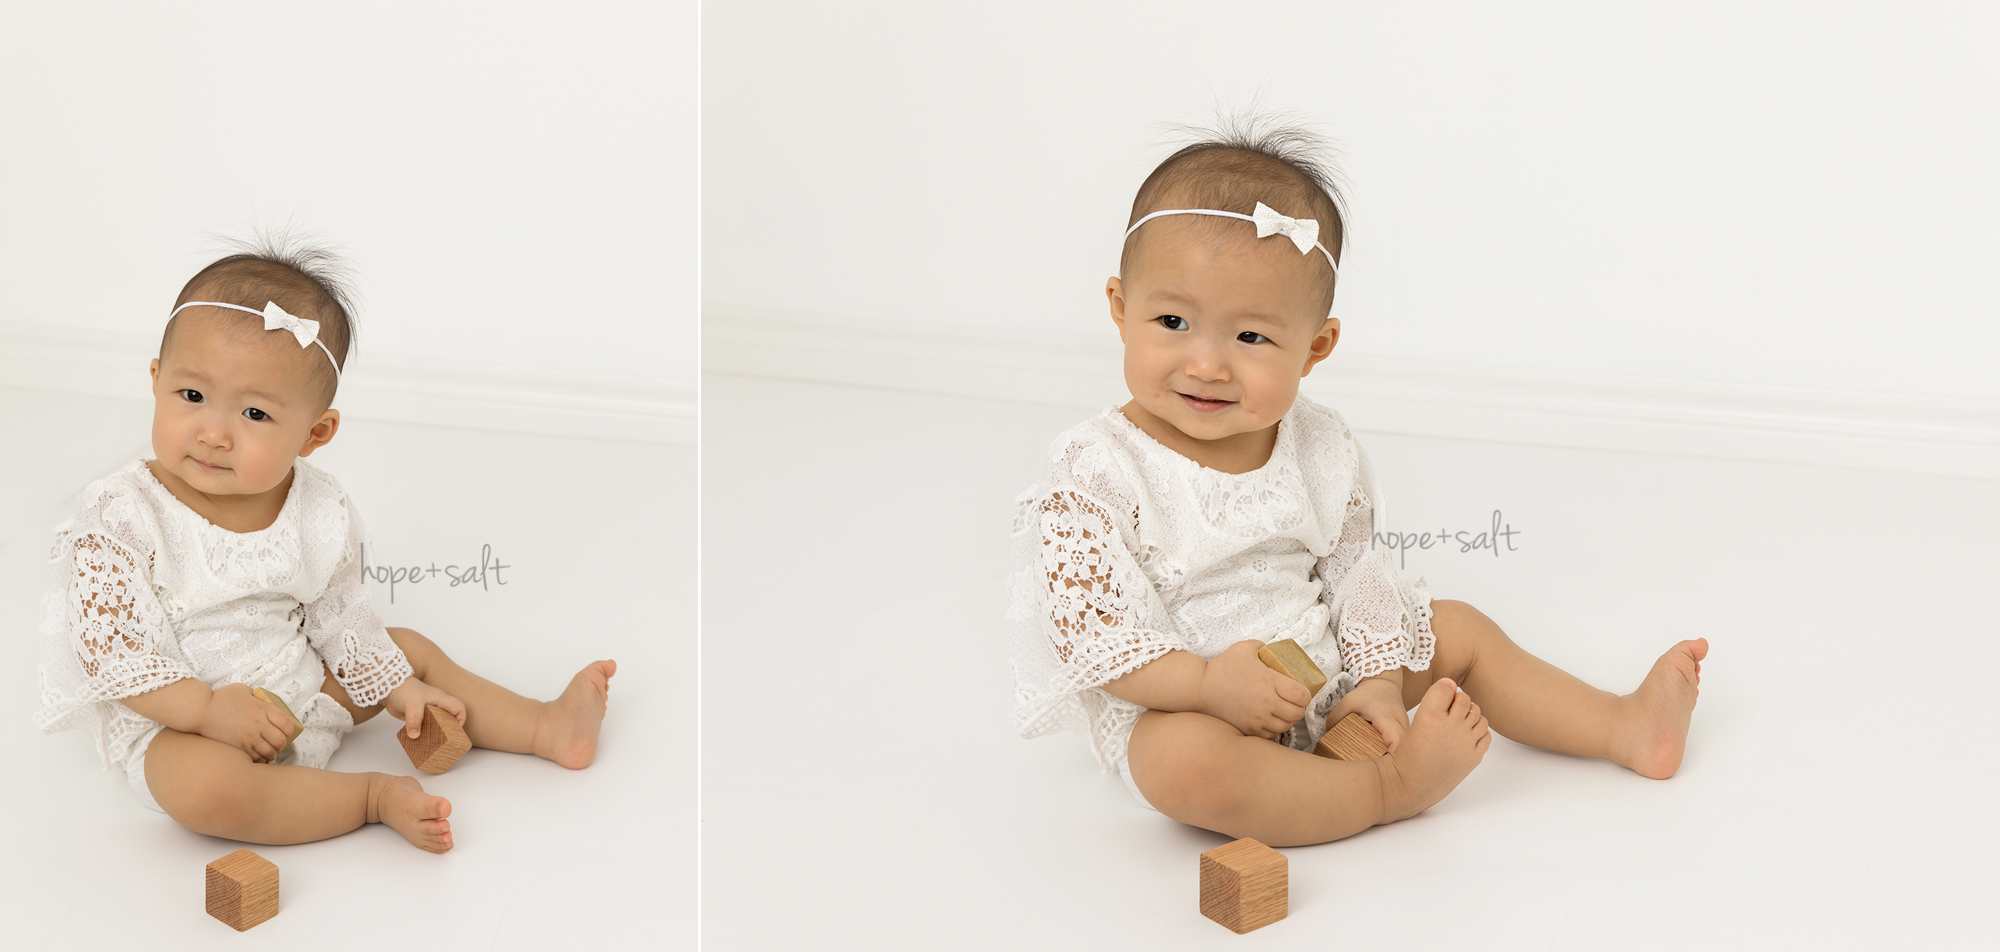 oakville baby photographer - simple and neutral first birthday session for one year old girl Chloe and family in studio